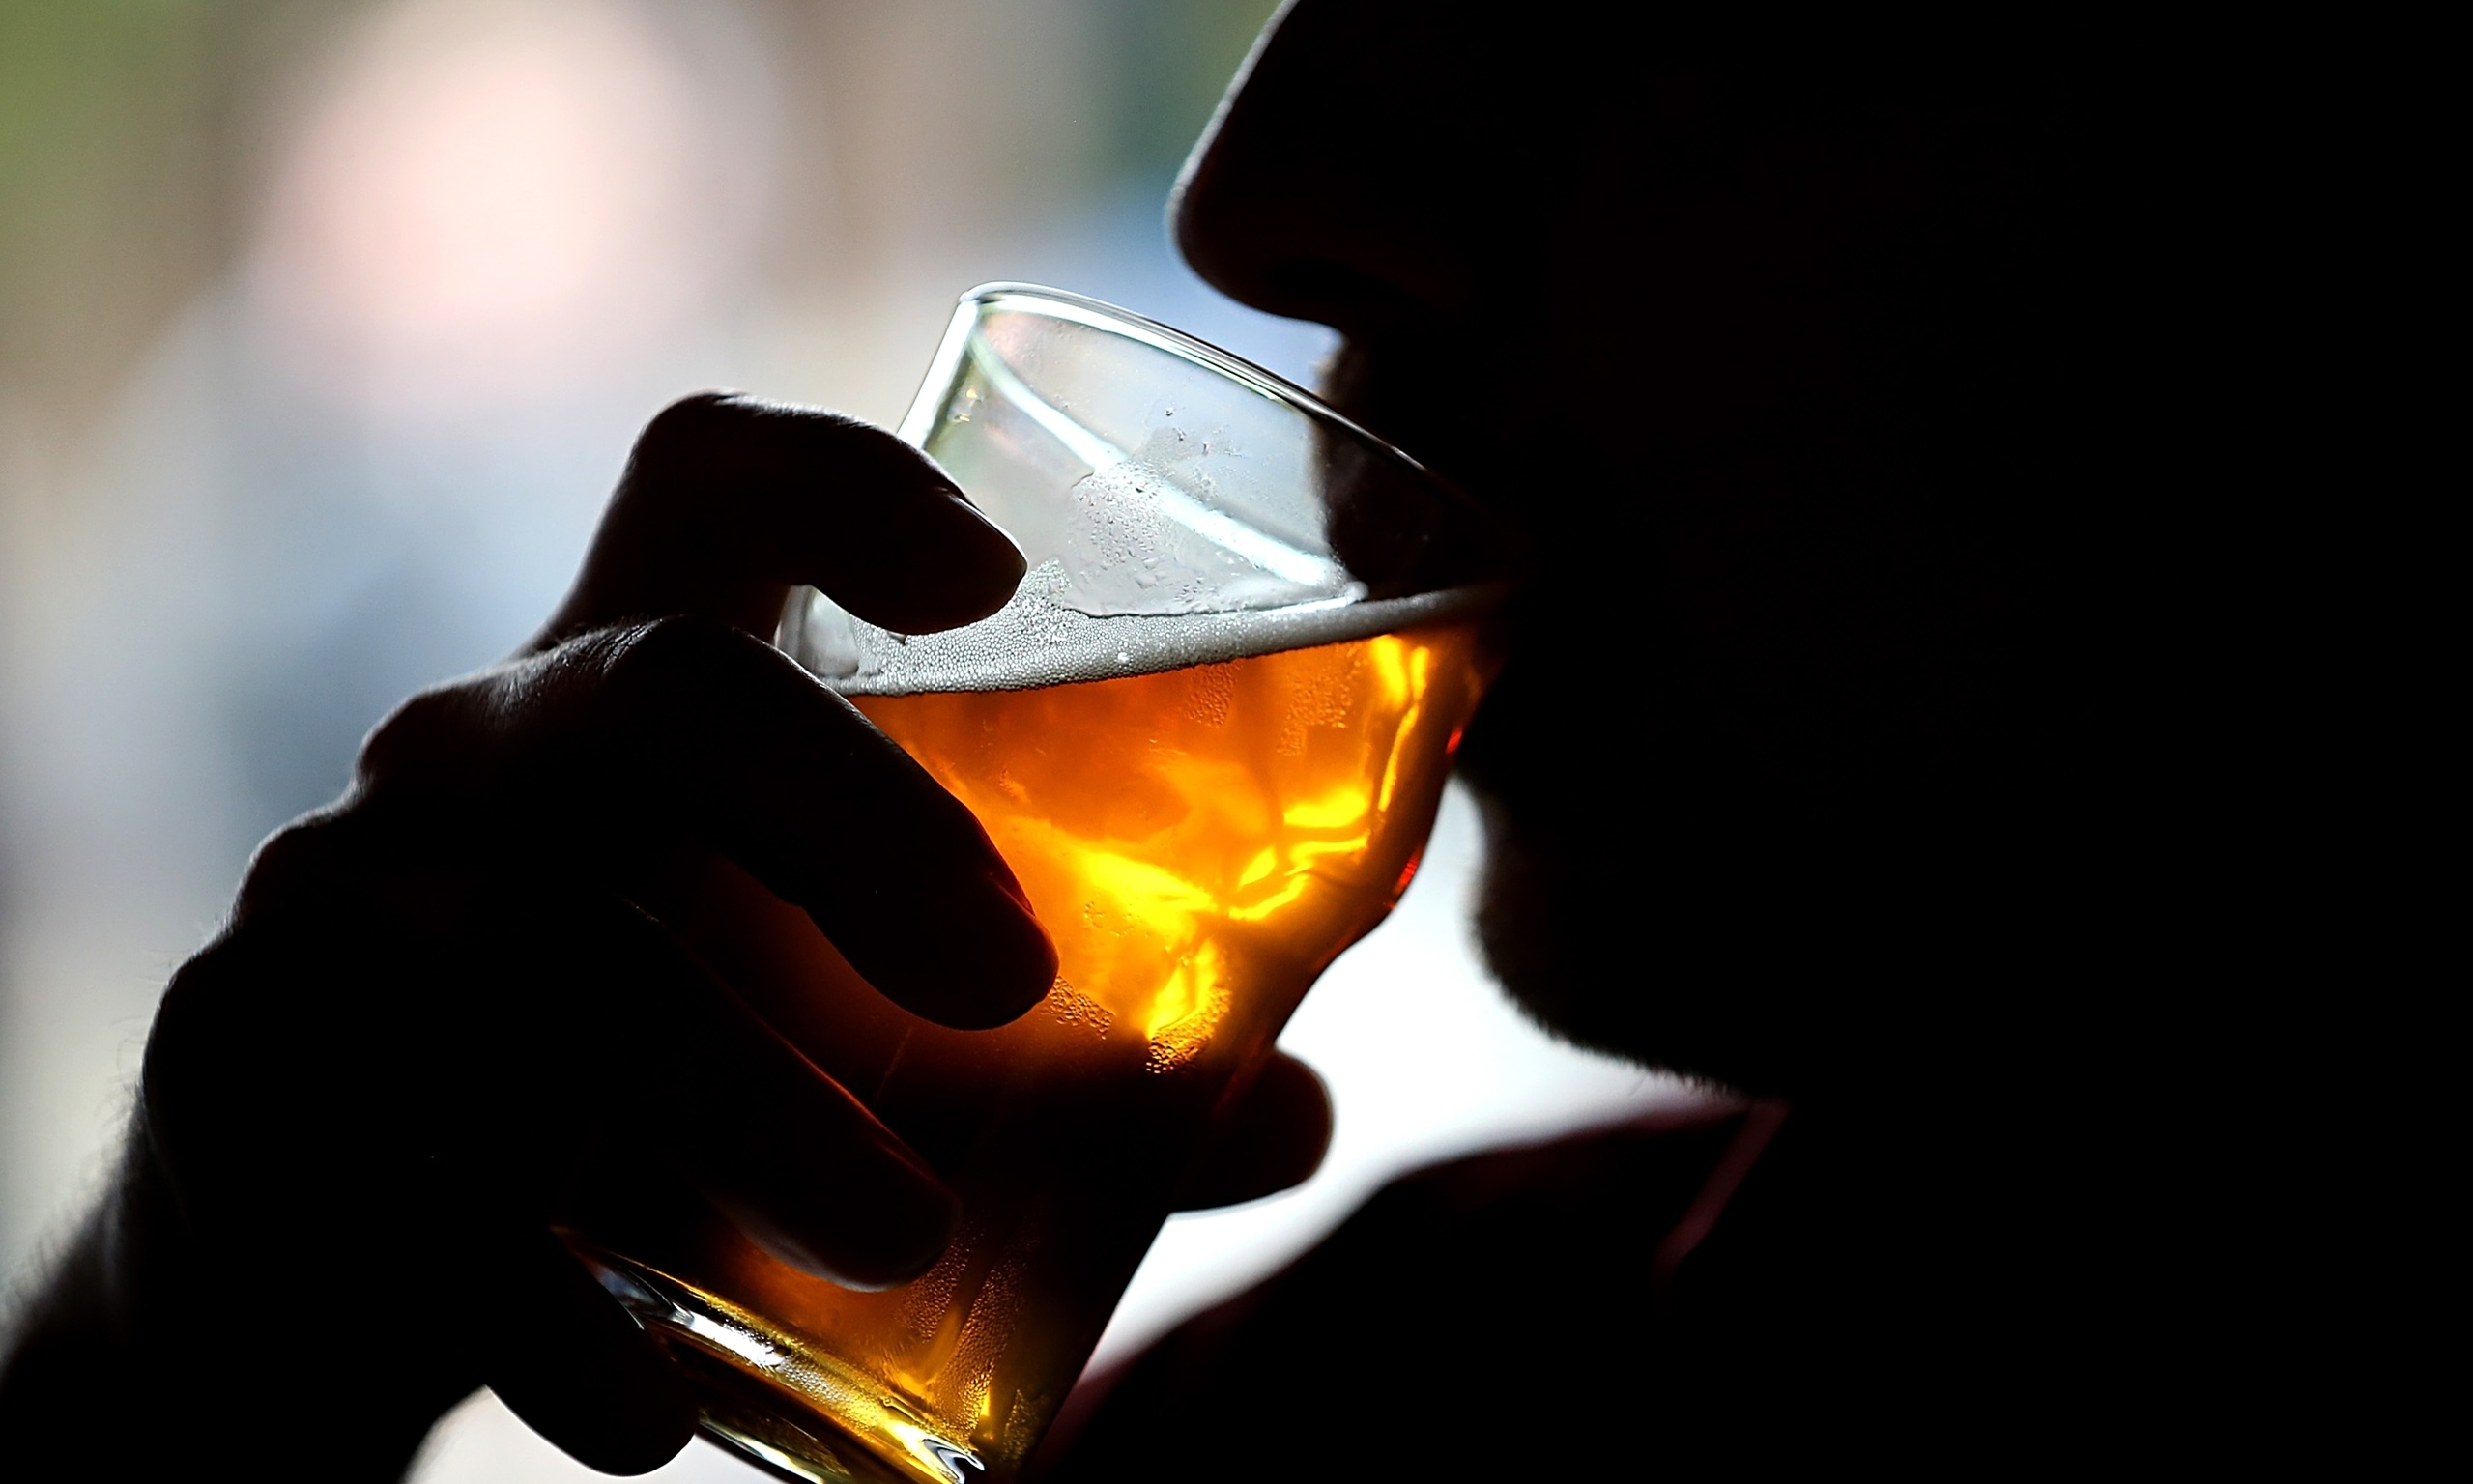 image of man drinking alcohol